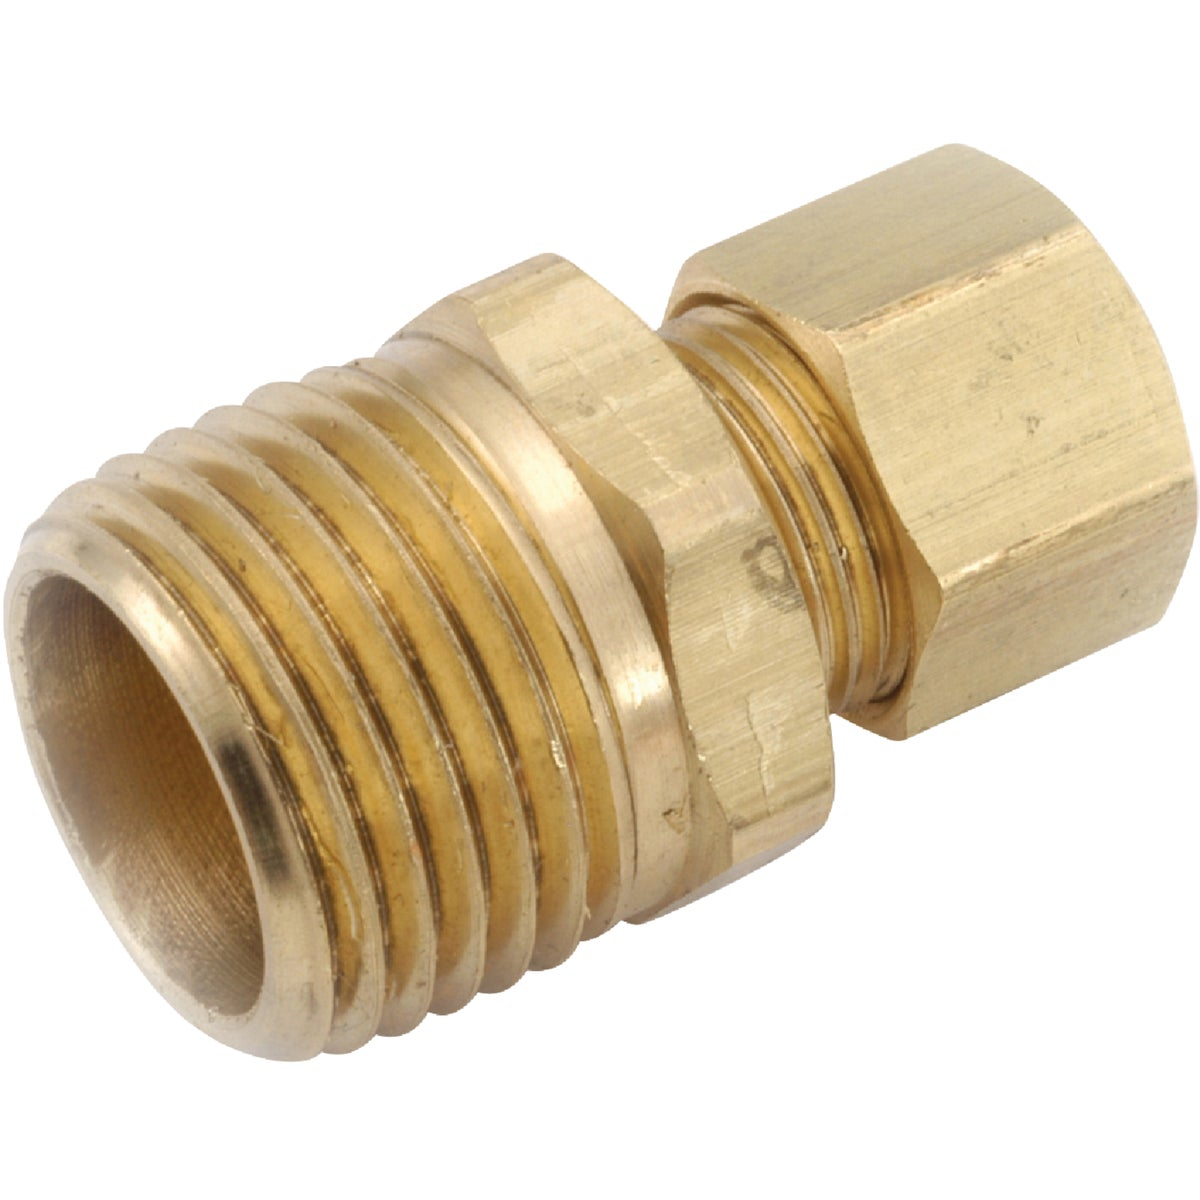 5/8X3/4 MALE CONNECTOR